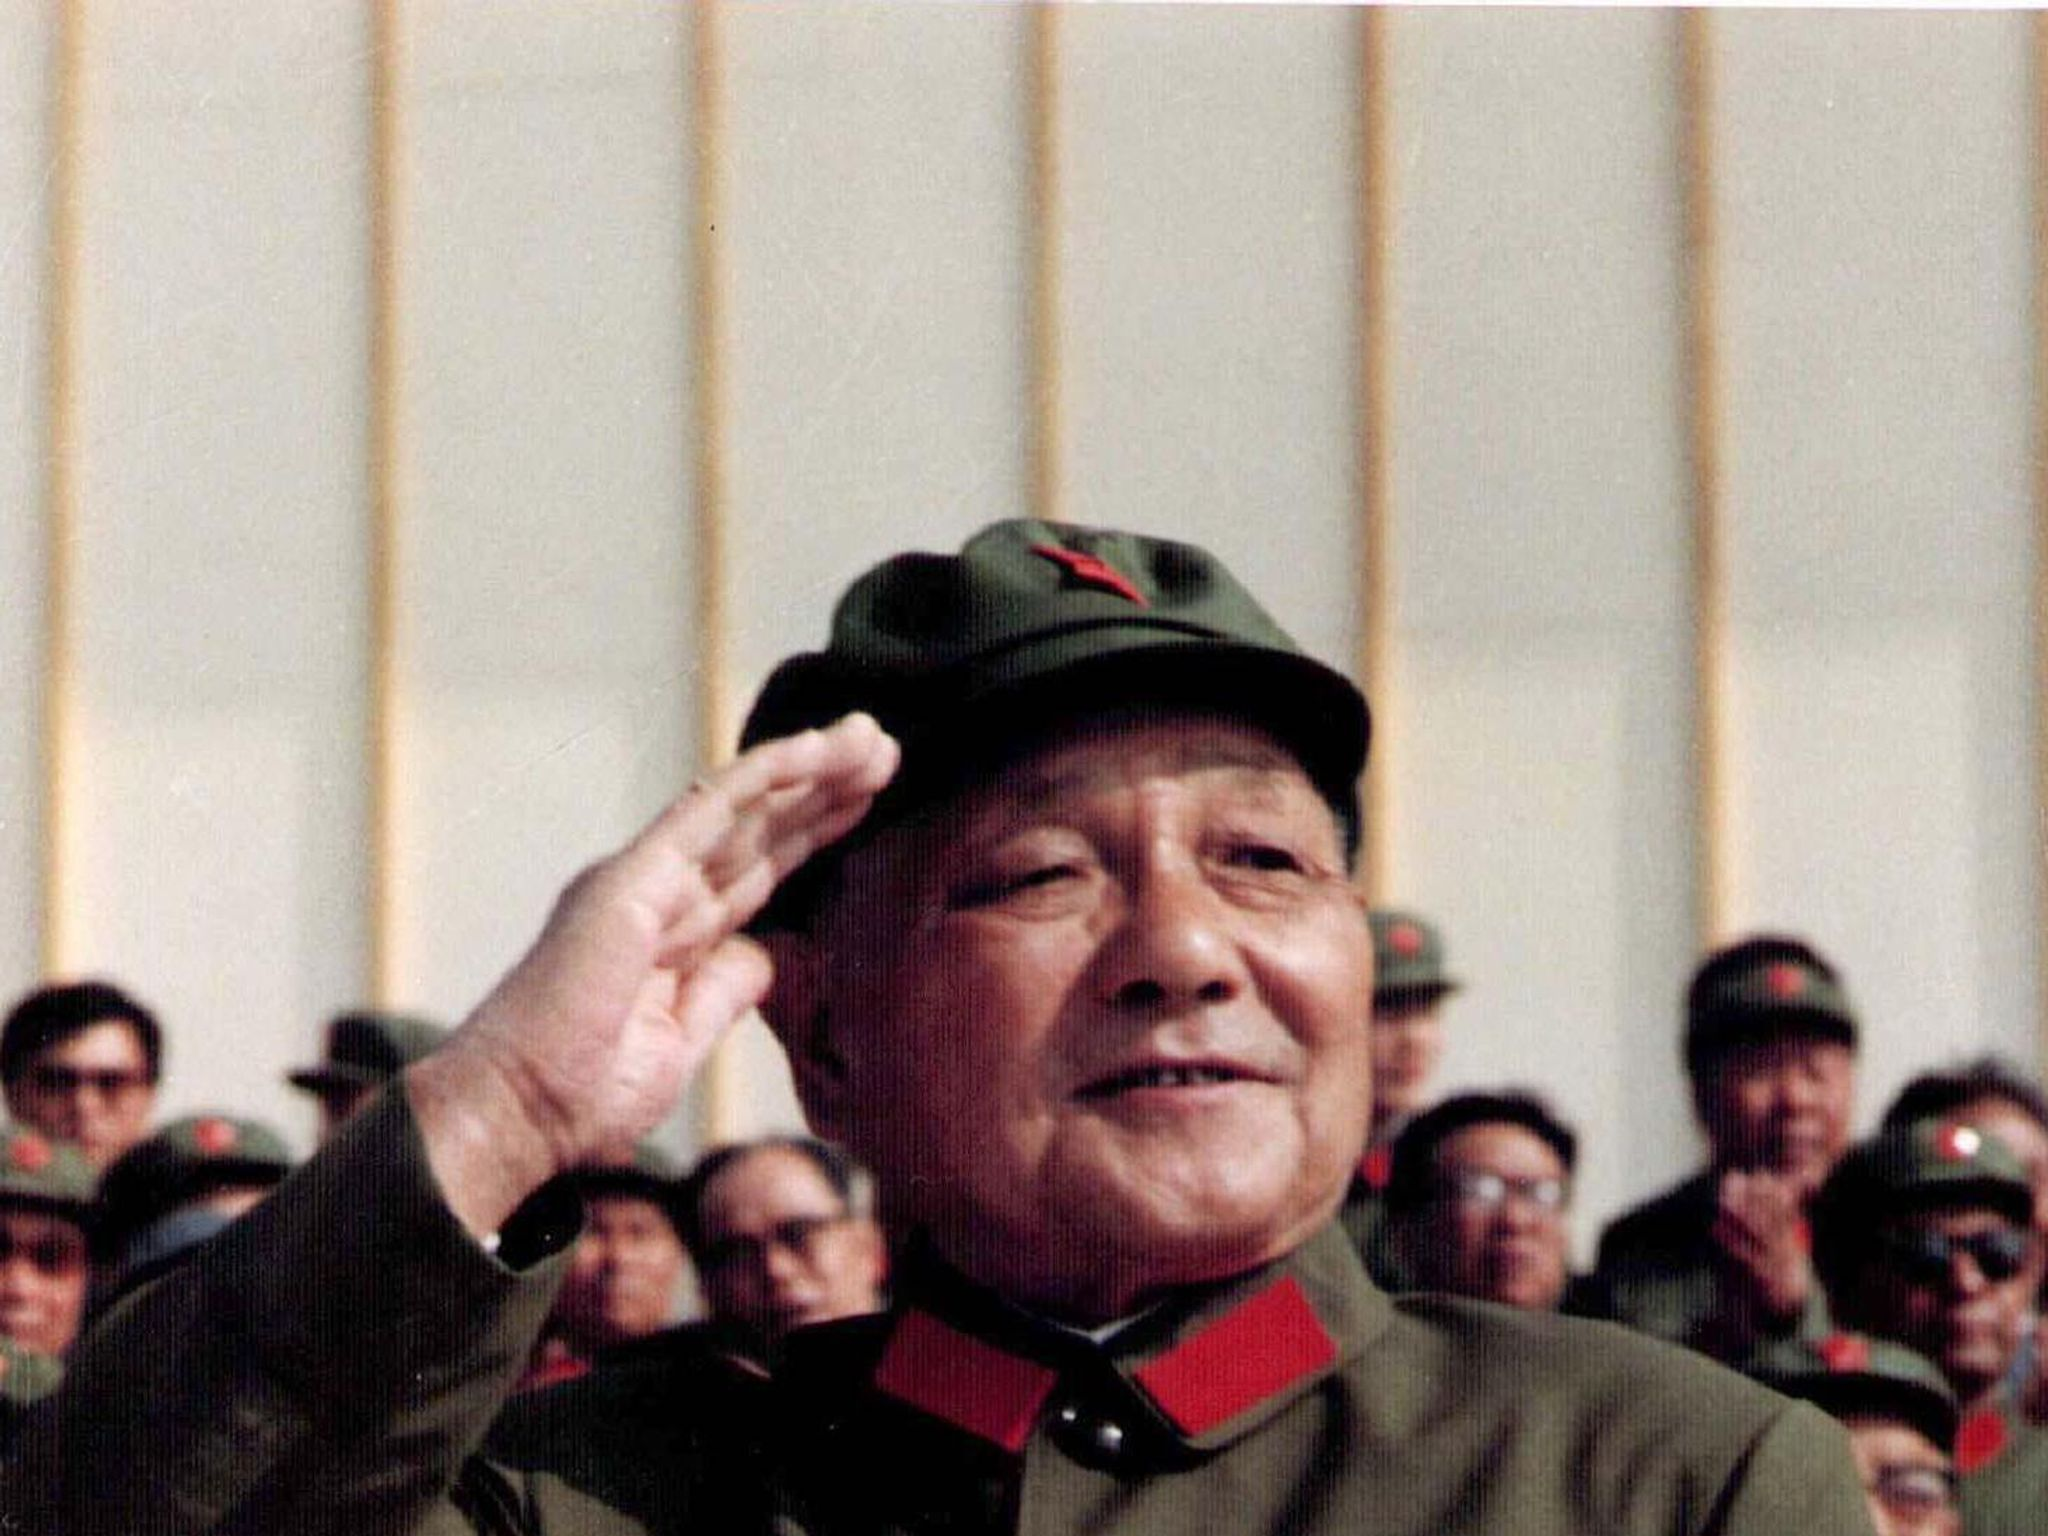 deng xiaopings economic reform Deng xiaoping did not originate reform and opening — that began under the leadership of hua guofeng after the death of mao zedong in 1976 but deng provided the steady hand, the clear direction and the political skill for china to succeed.